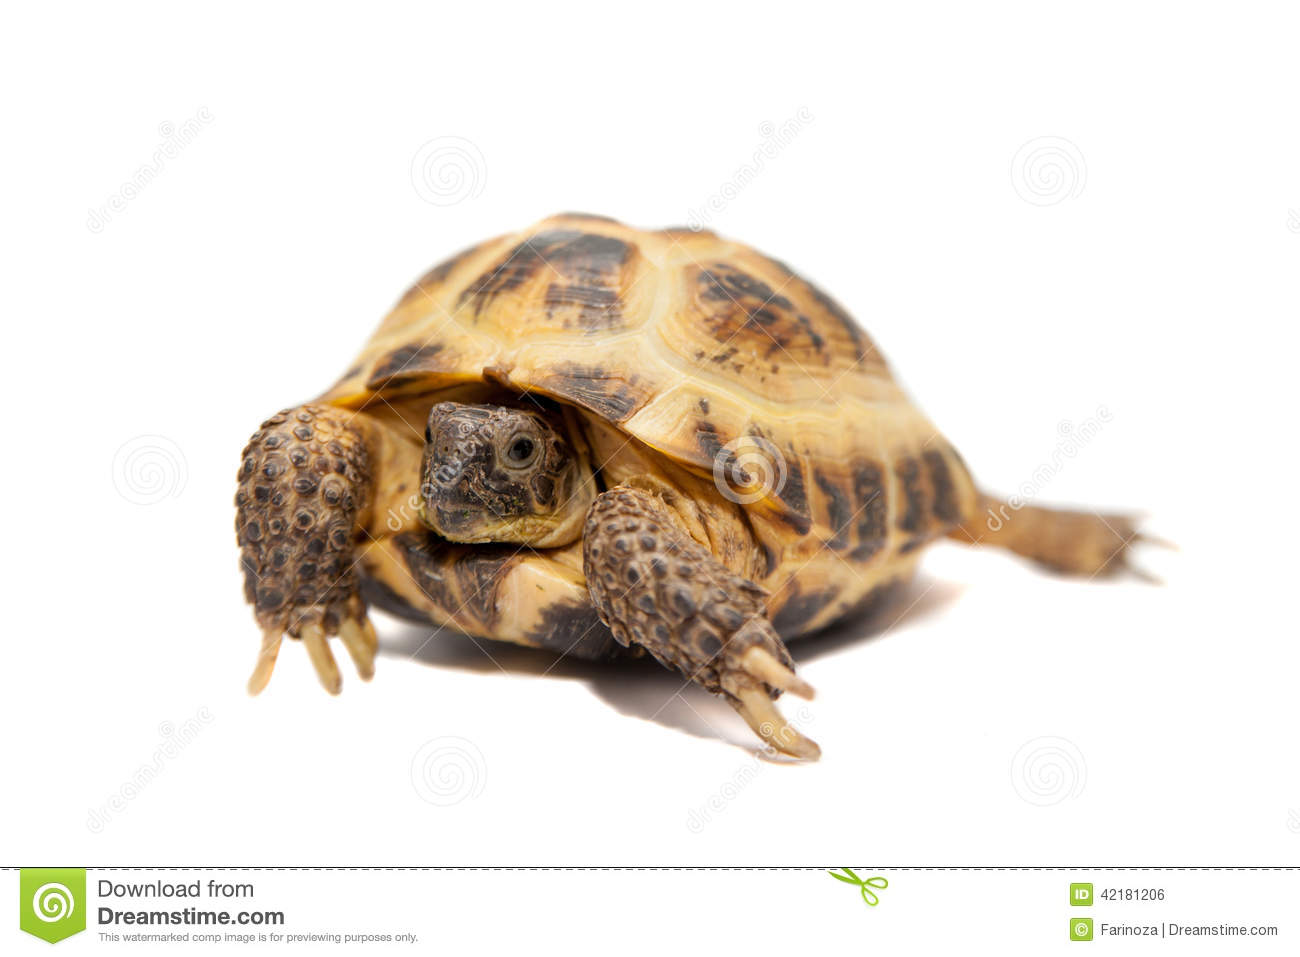 Russian or Central Asian tortoise on white